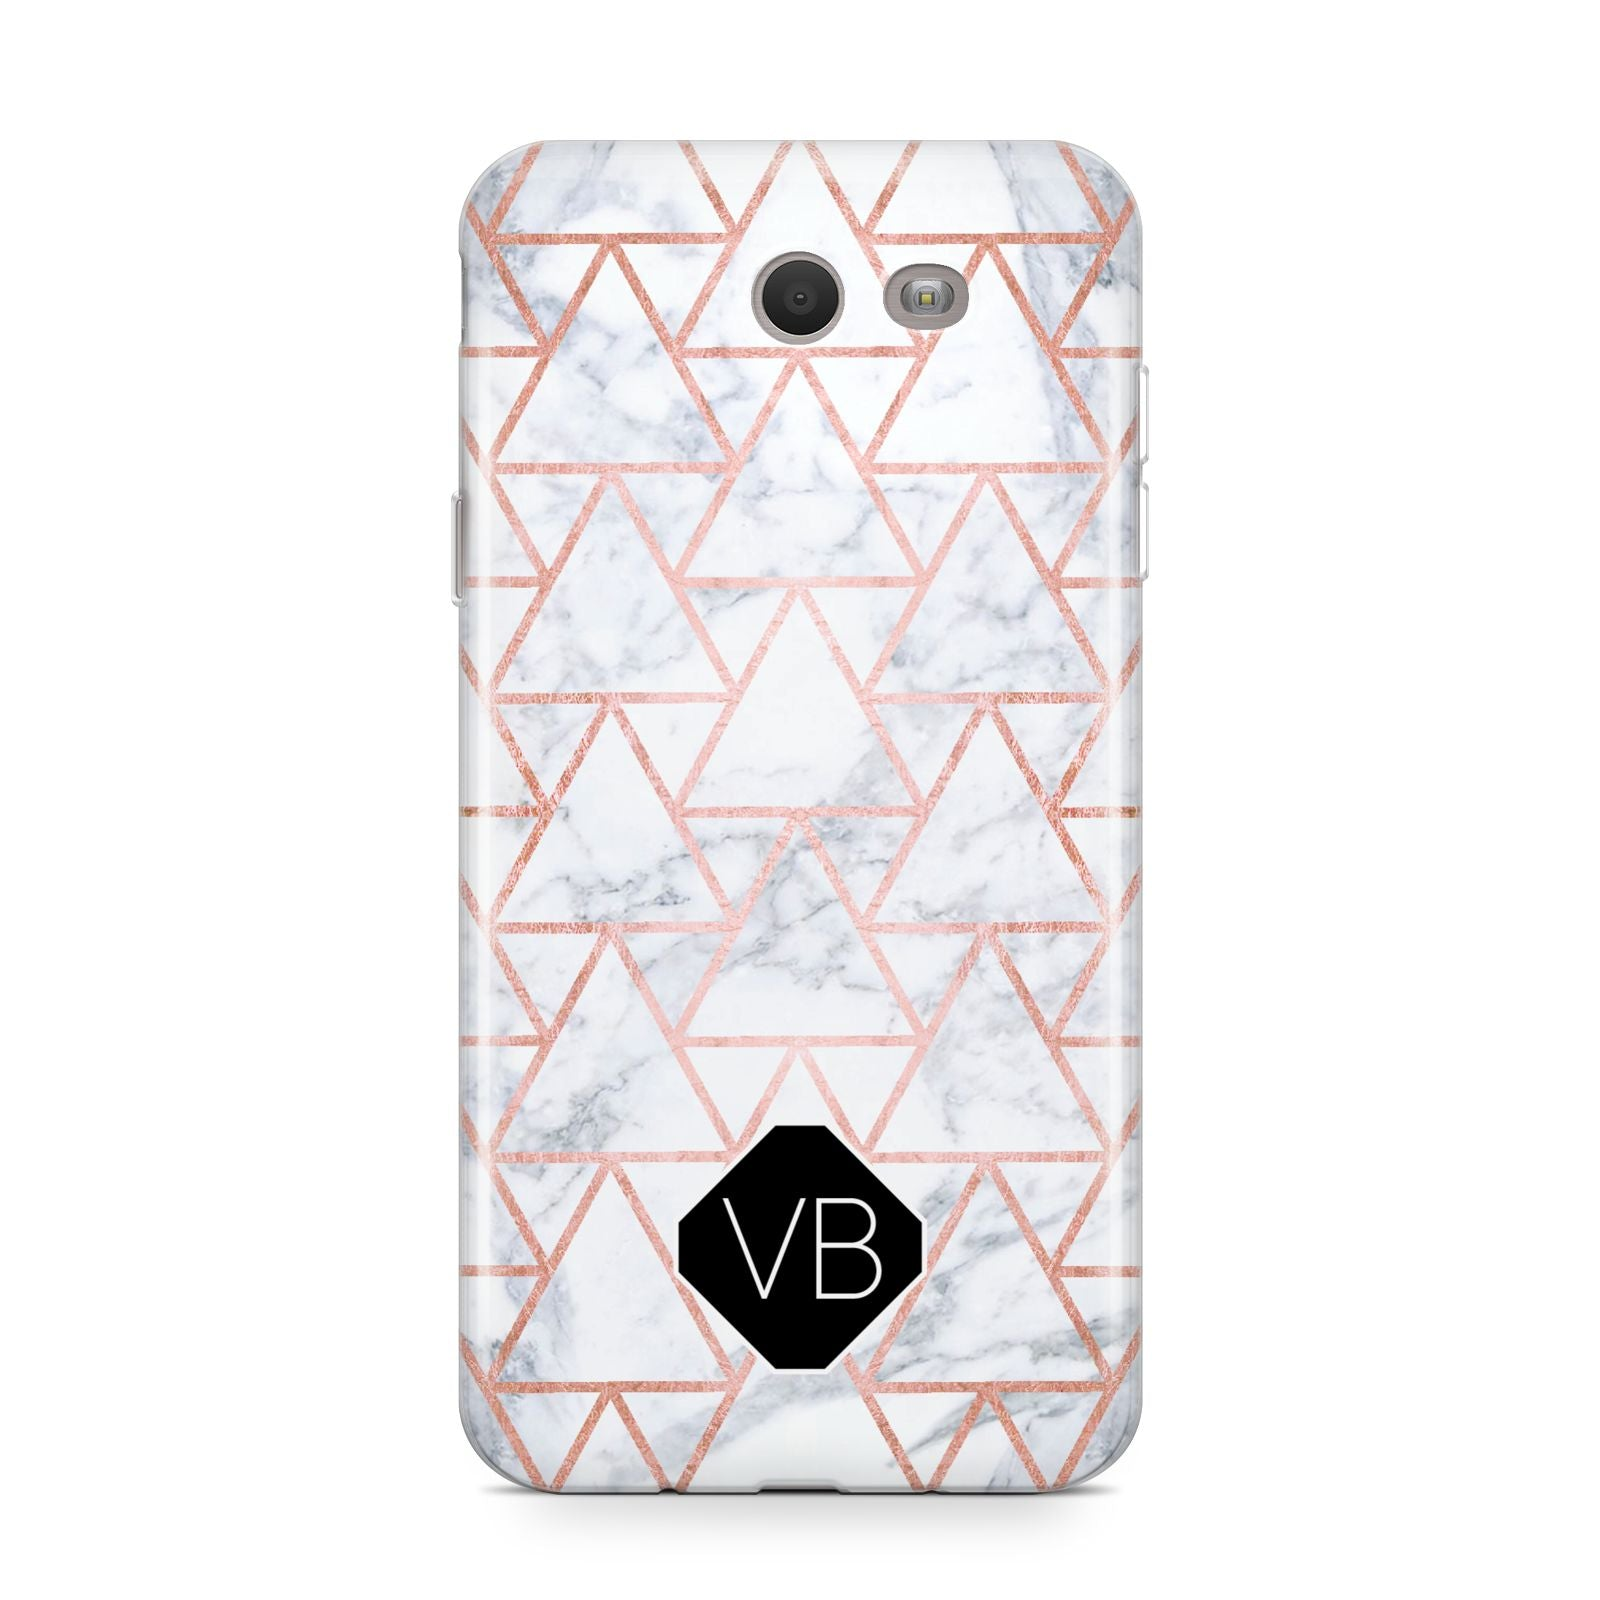 Personalised Rose Gold Grey Marble Hexagon Samsung Galaxy J7 2017 Case